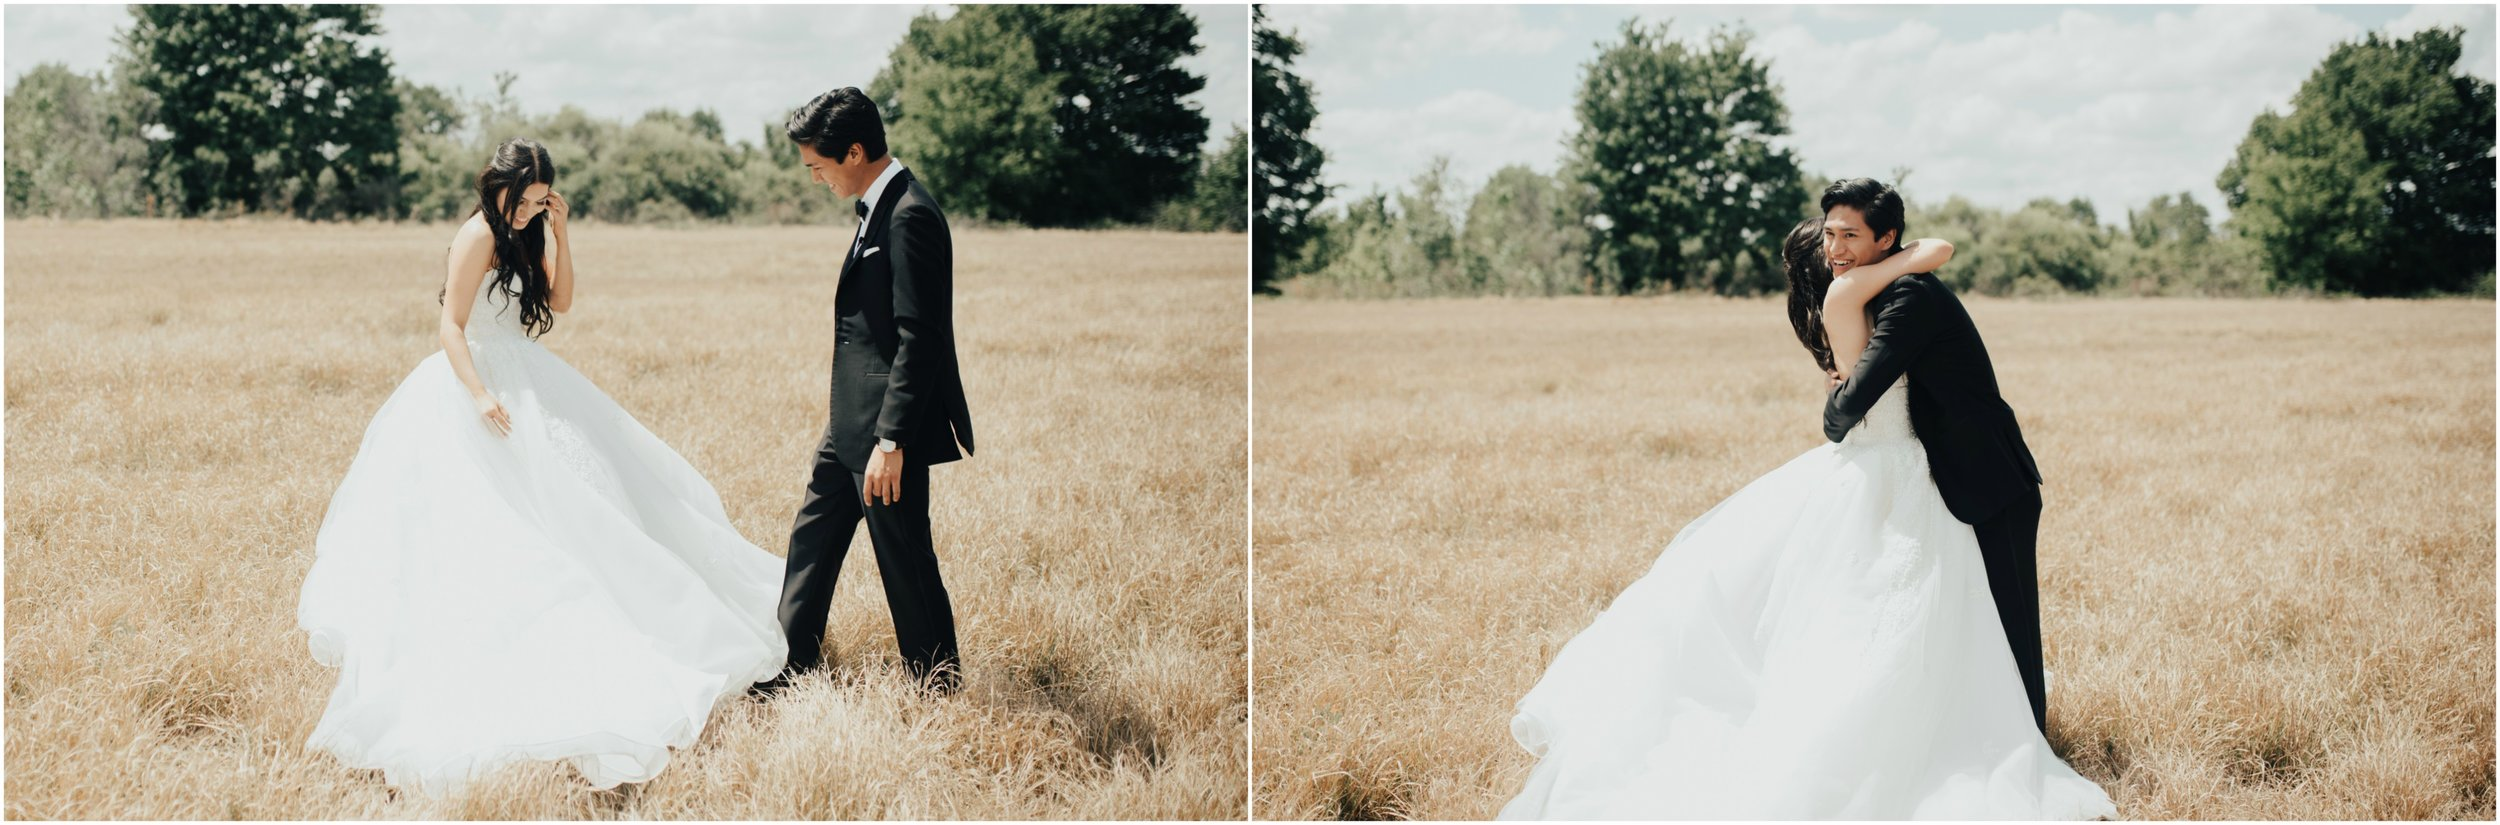 taylor-miguel-wedding-lake-mary-first-look2.jpg